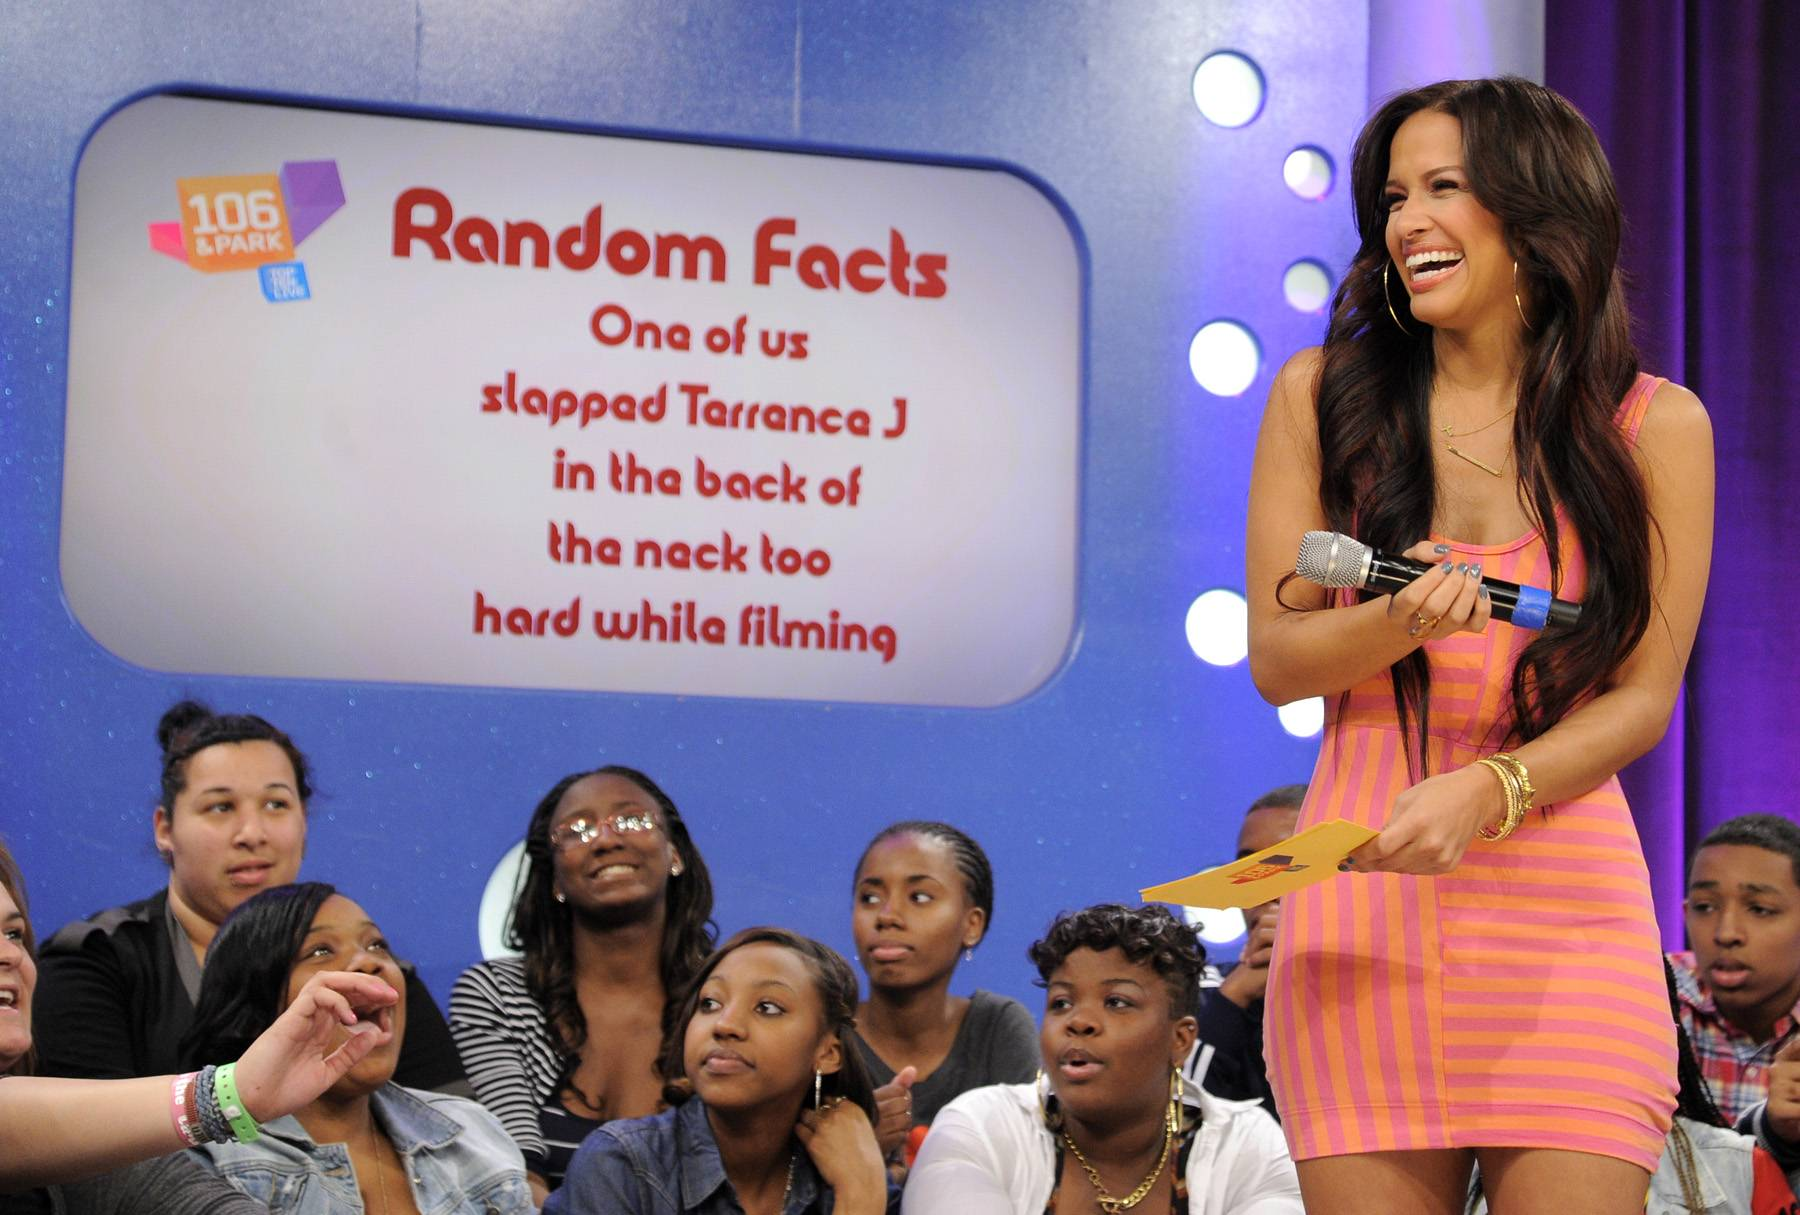 Look at That Random Fact - Rocsi Diaz and Pooch Hall does random facts with audience members at 106 & Park, April 12, 2012. (Photo: John Ricard / BET)